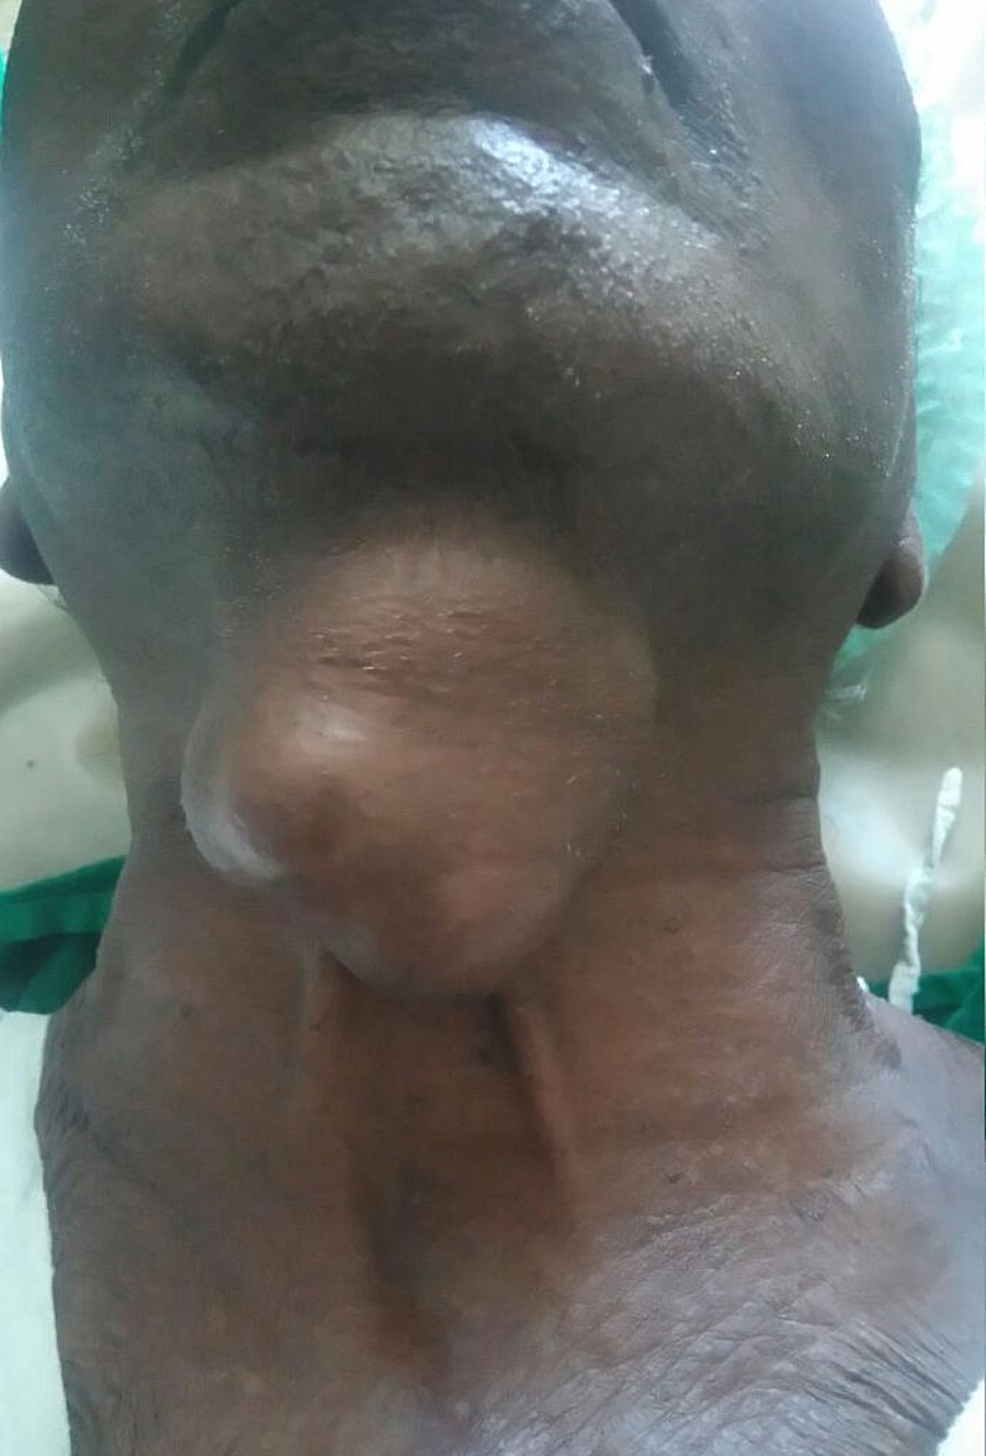 Clinical-picture-showing-a-6-x-5-cm-lobulated-mass-in-the-anterior-aspect-of-the-neck.